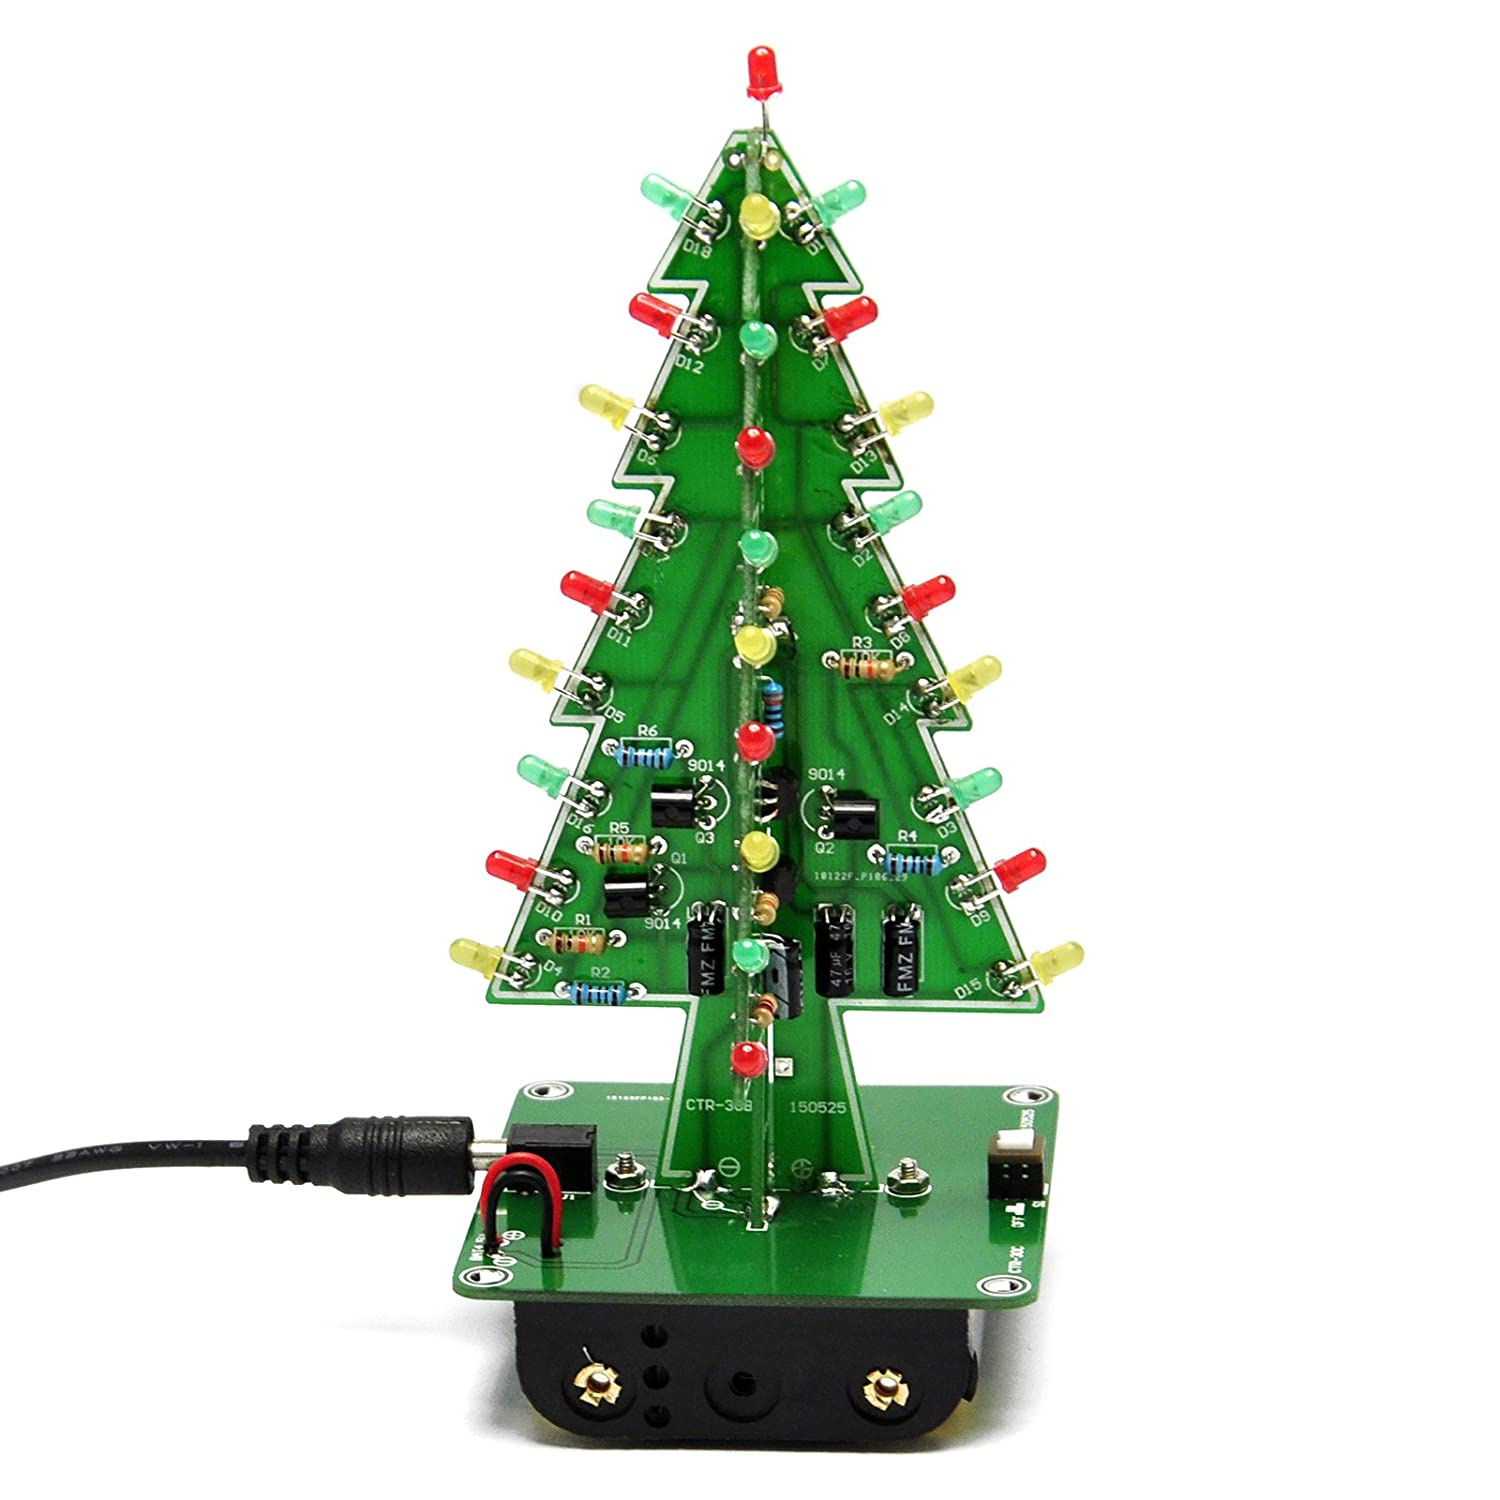 Amazon.com: Gikfun 3D Christmas Trees LED DIY Kit Flash LED Circuit ...